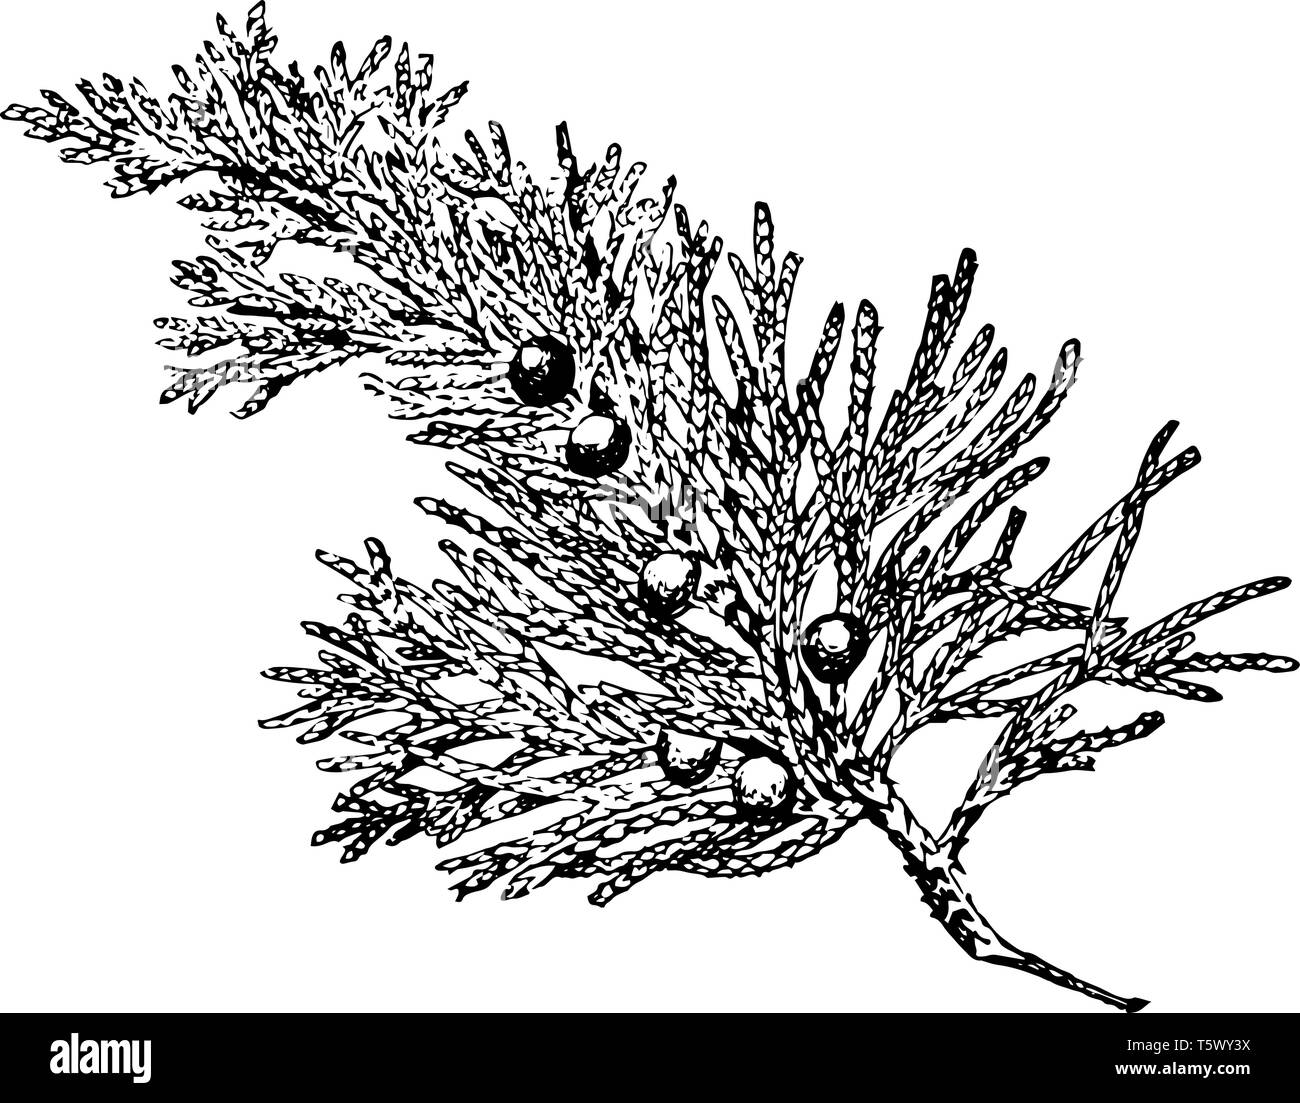 A Juniper branch with multiple fruits like berries on it, vintage line drawing or engraving illustration. - Stock Vector